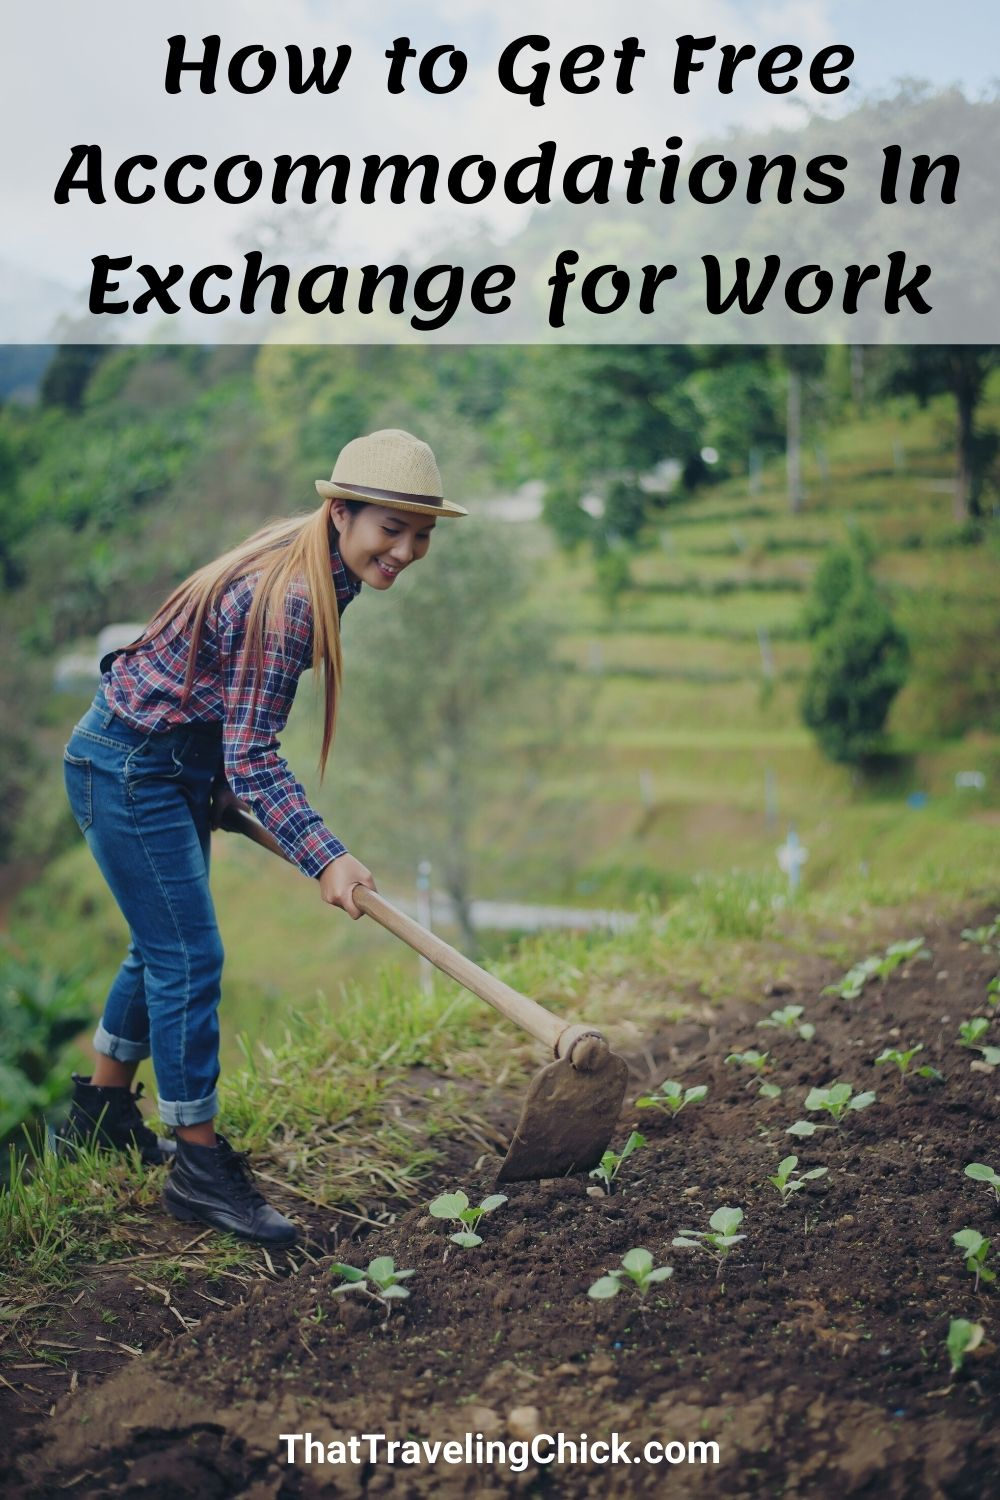 How to Get Free Accommodations In Exchange for Work #freeaccommodations